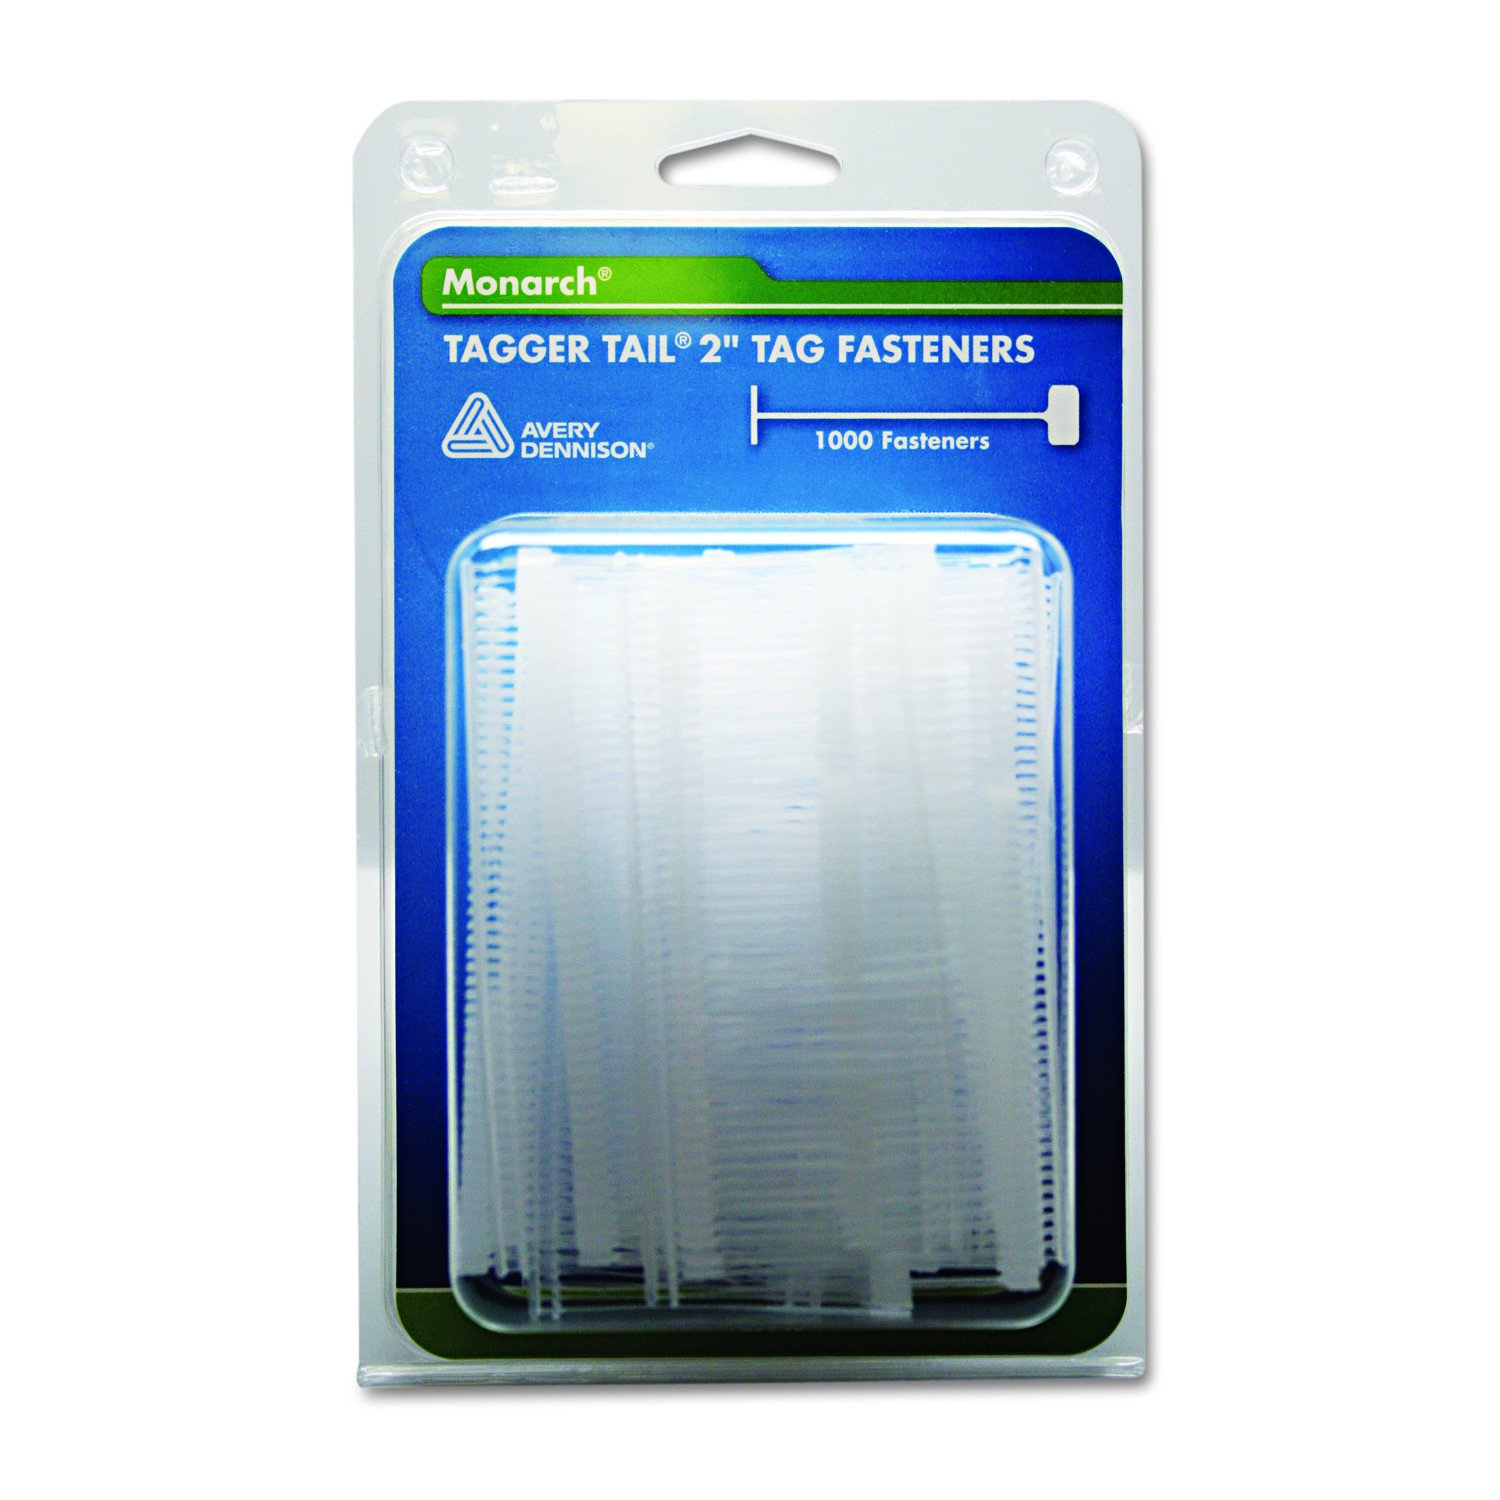 Monarch 925045 Tagger Tail 2 Tag Fasteners for SG Tag Attacher Kit Pack of 1 000